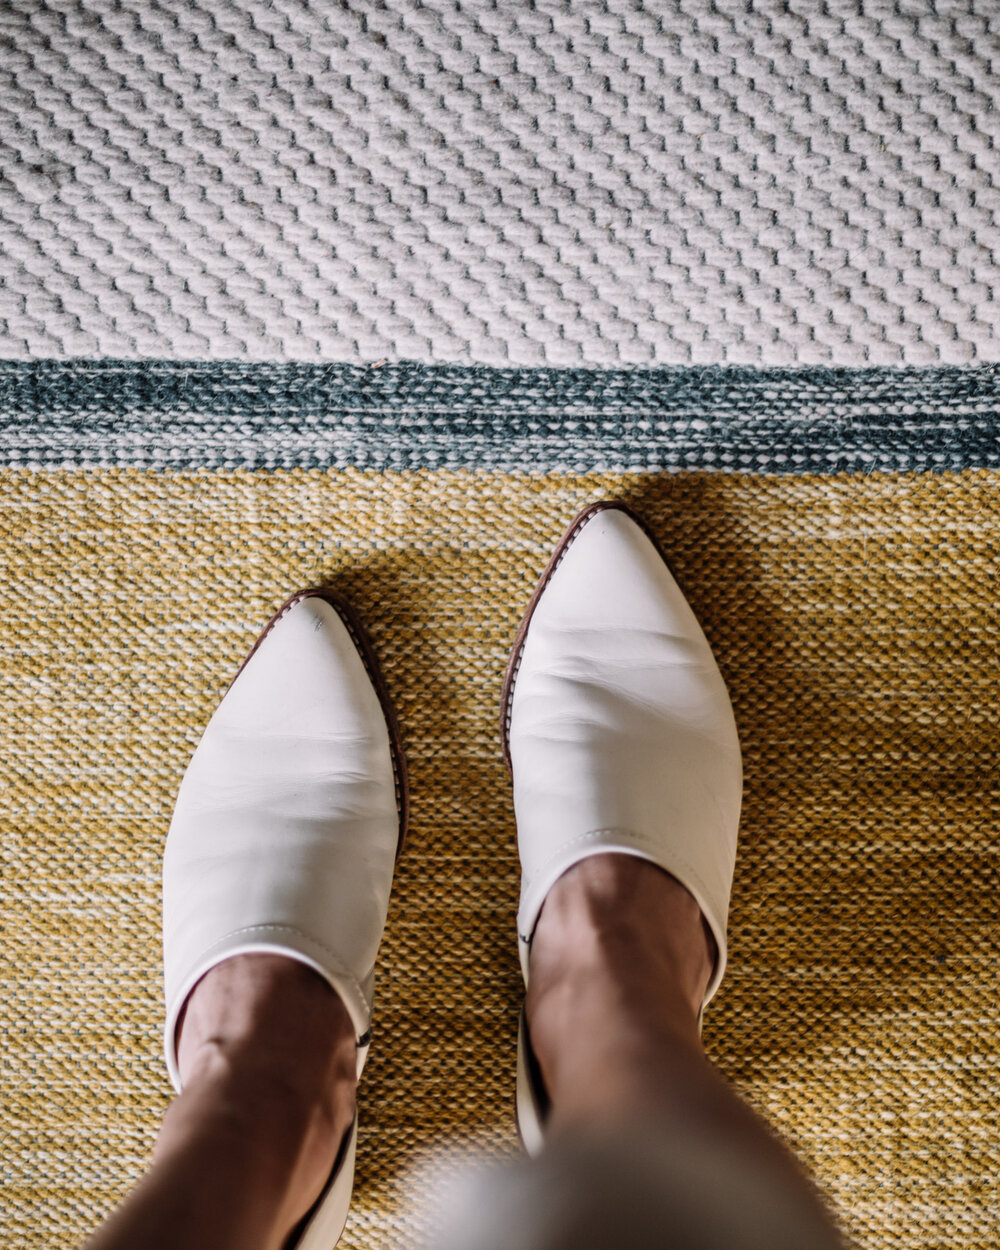 Rachel Off Duty: White Shoes on a Yellow Rug